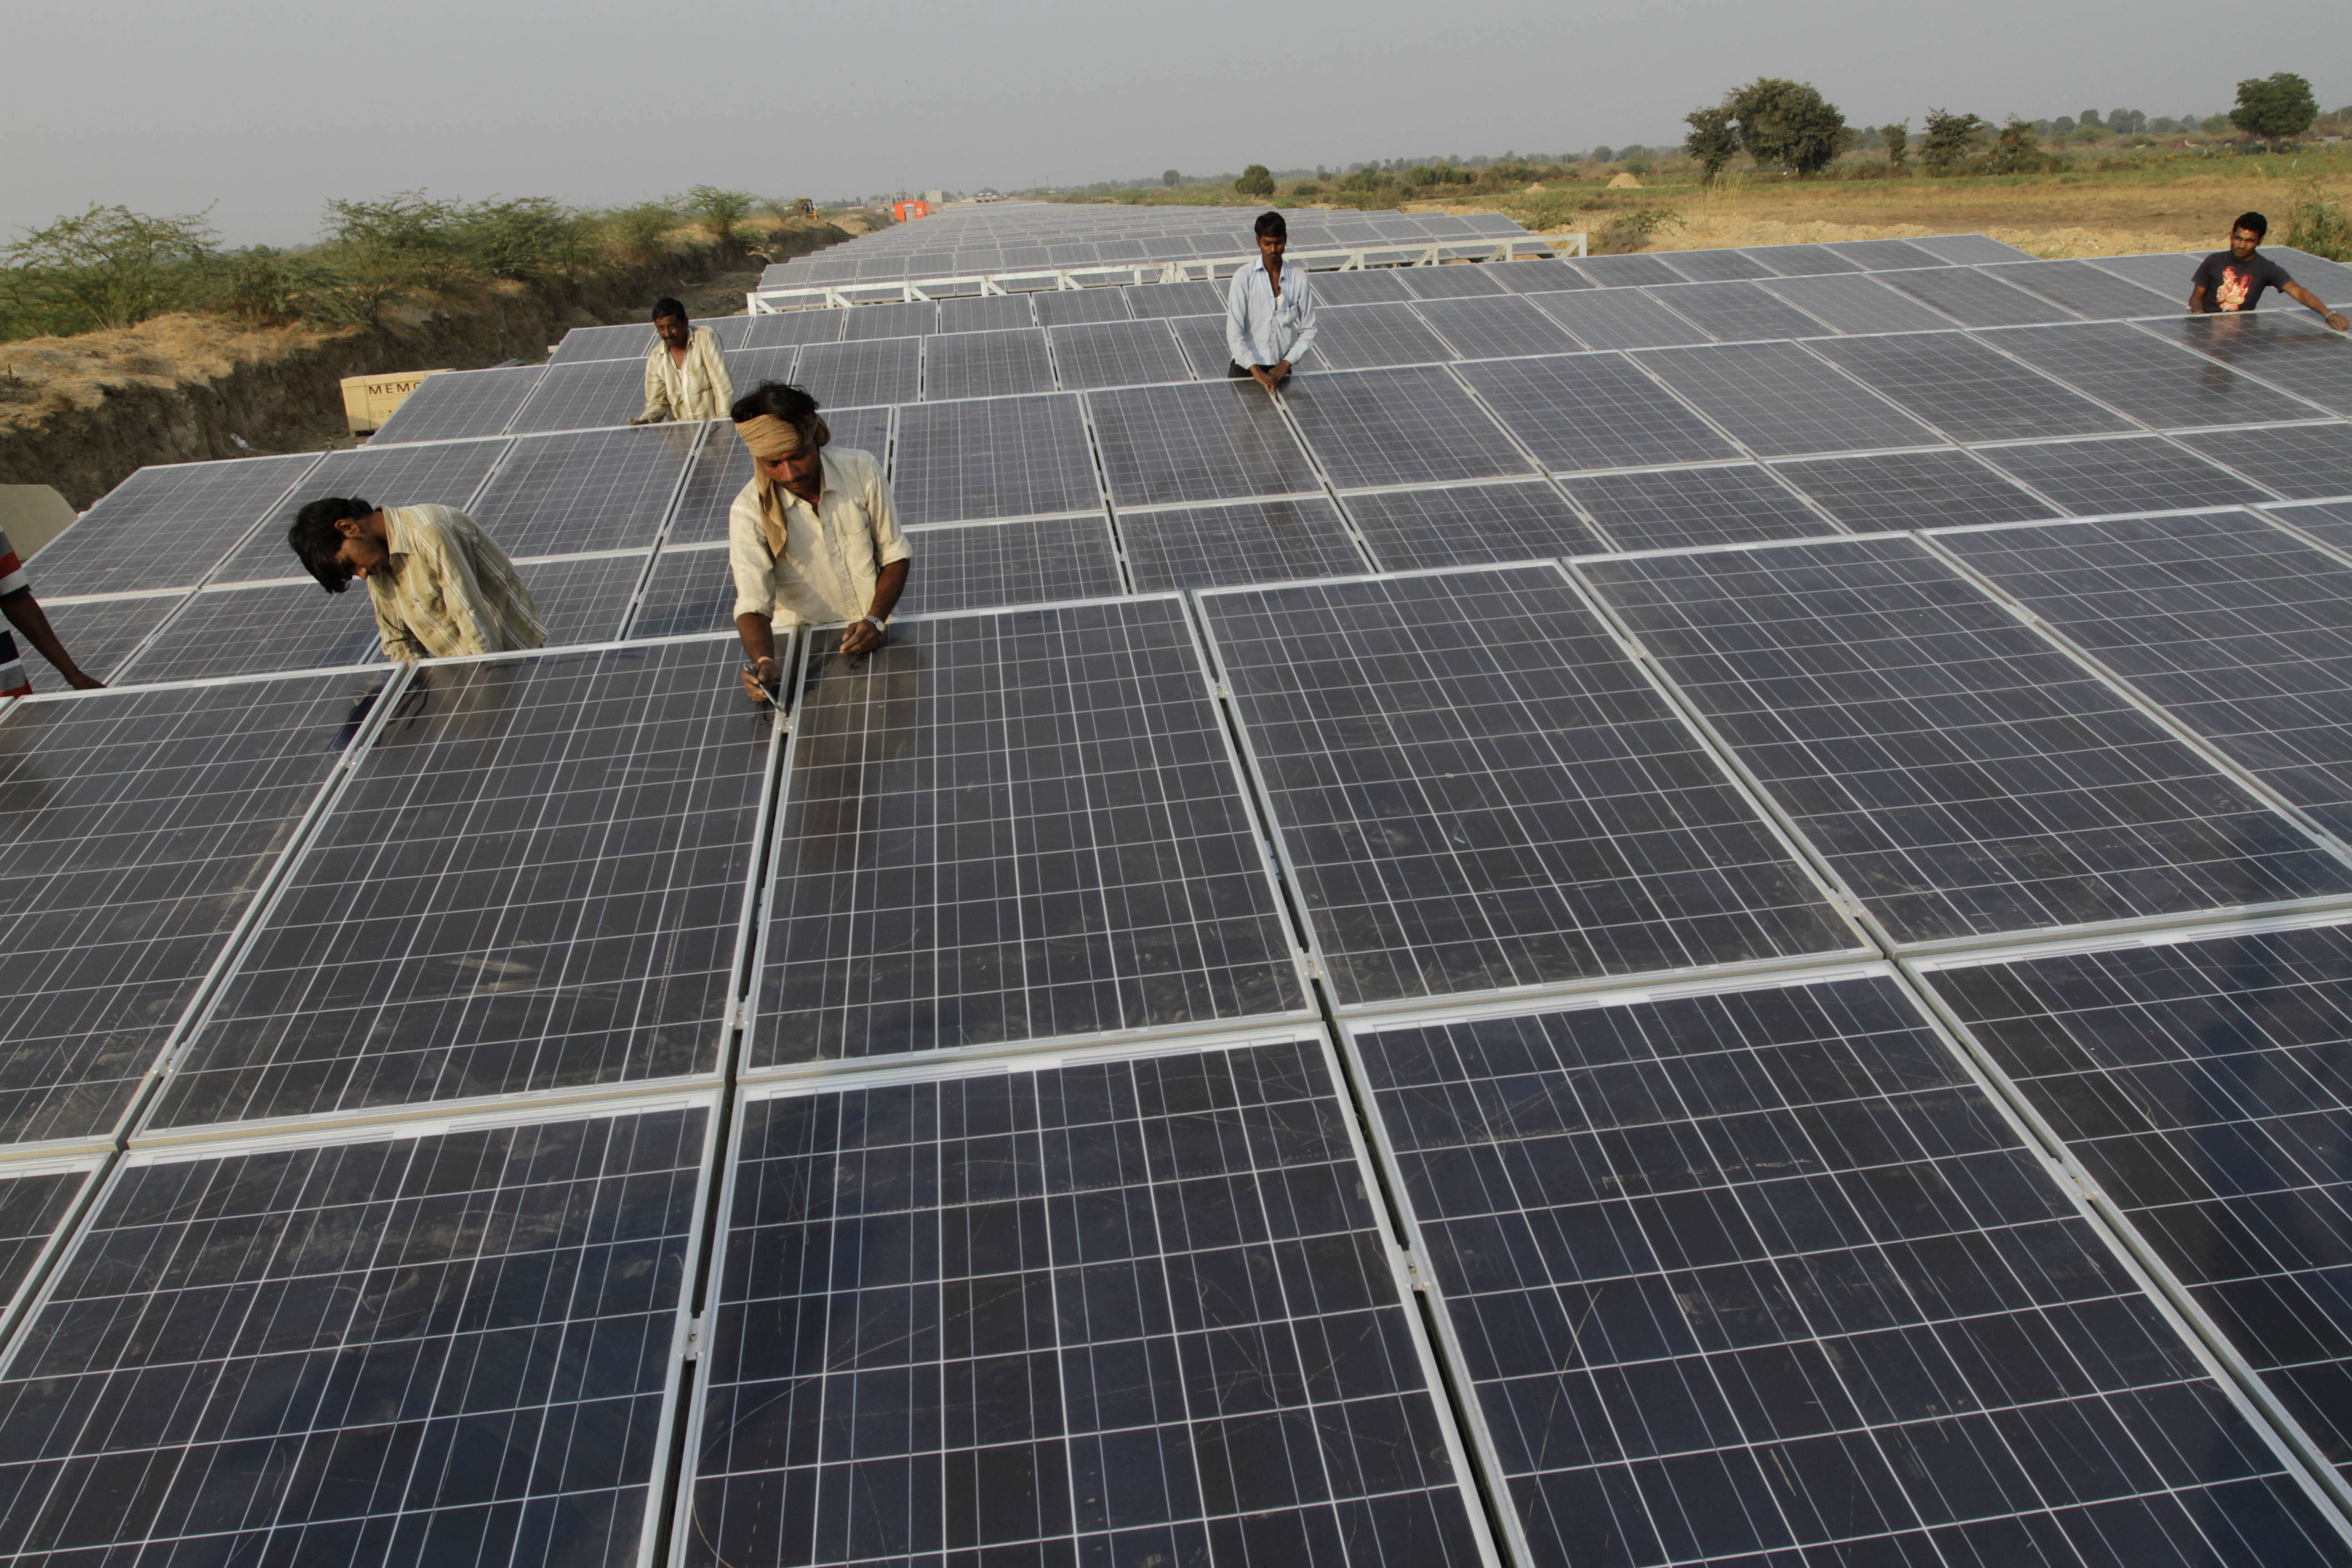 Russia is looking to make major inroads into India's solar energy sector. Source: AP